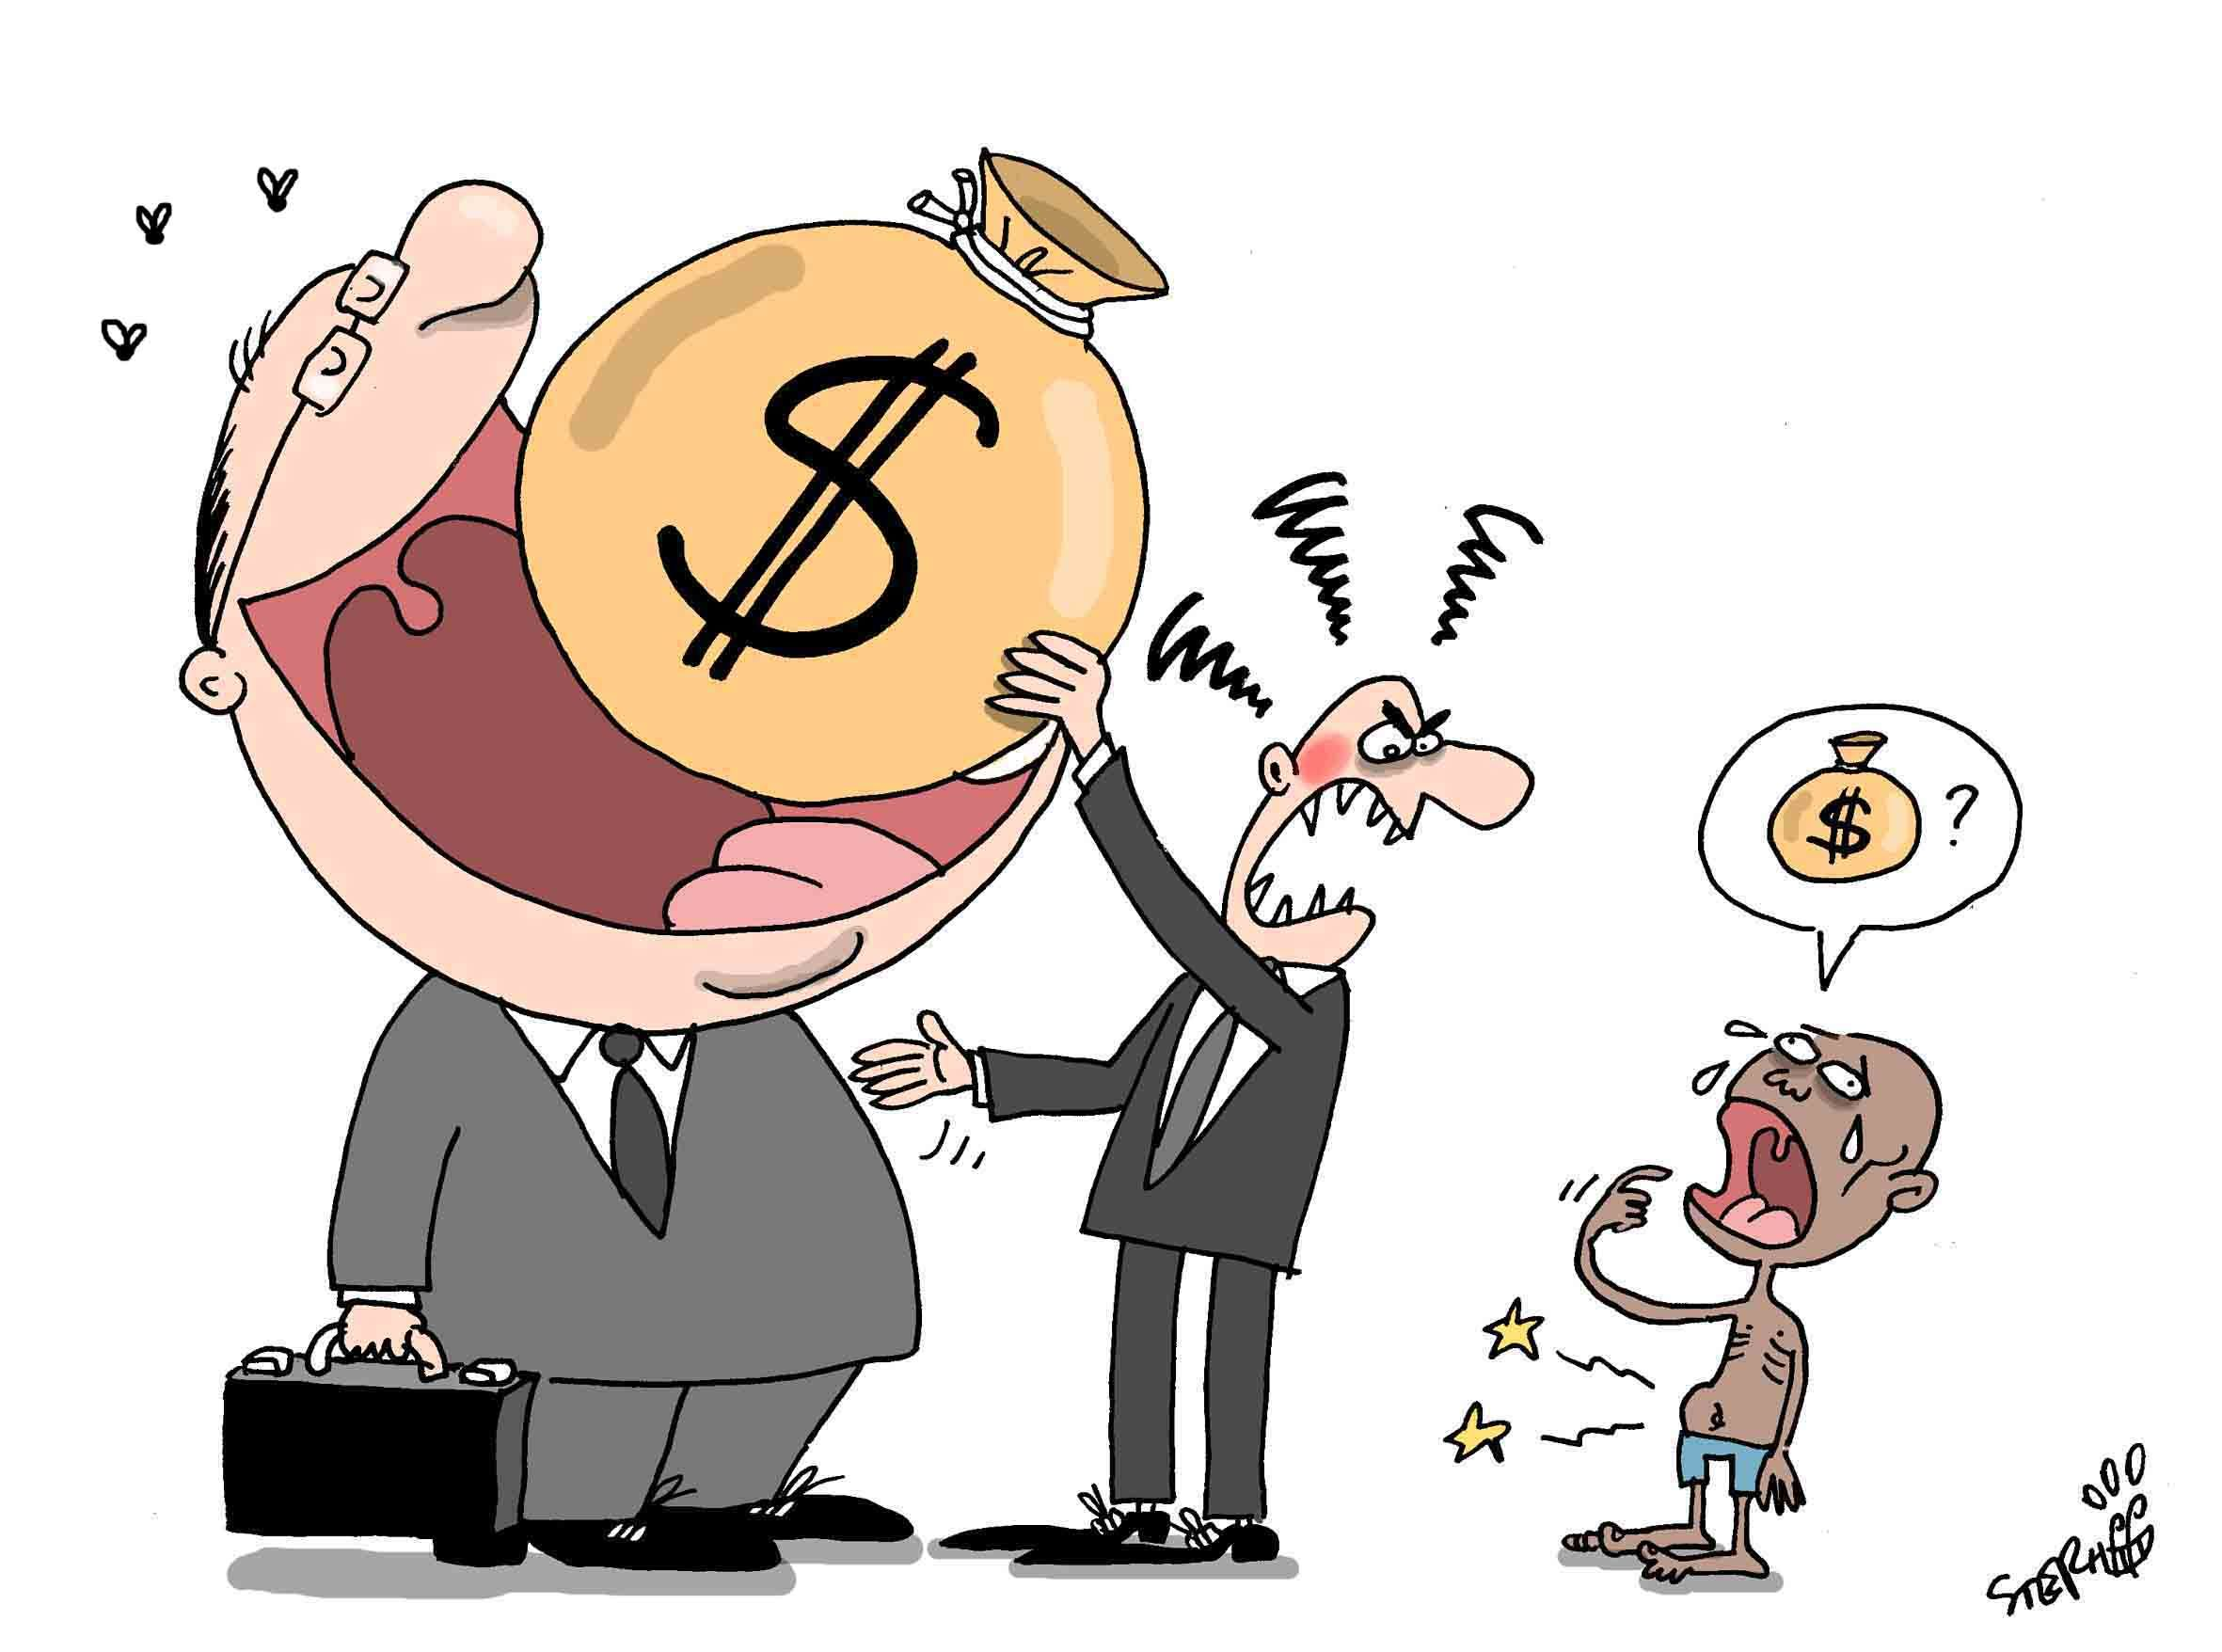 World Bank bailout - copyright by stephff - contact : stephff@loxinfo.co.th